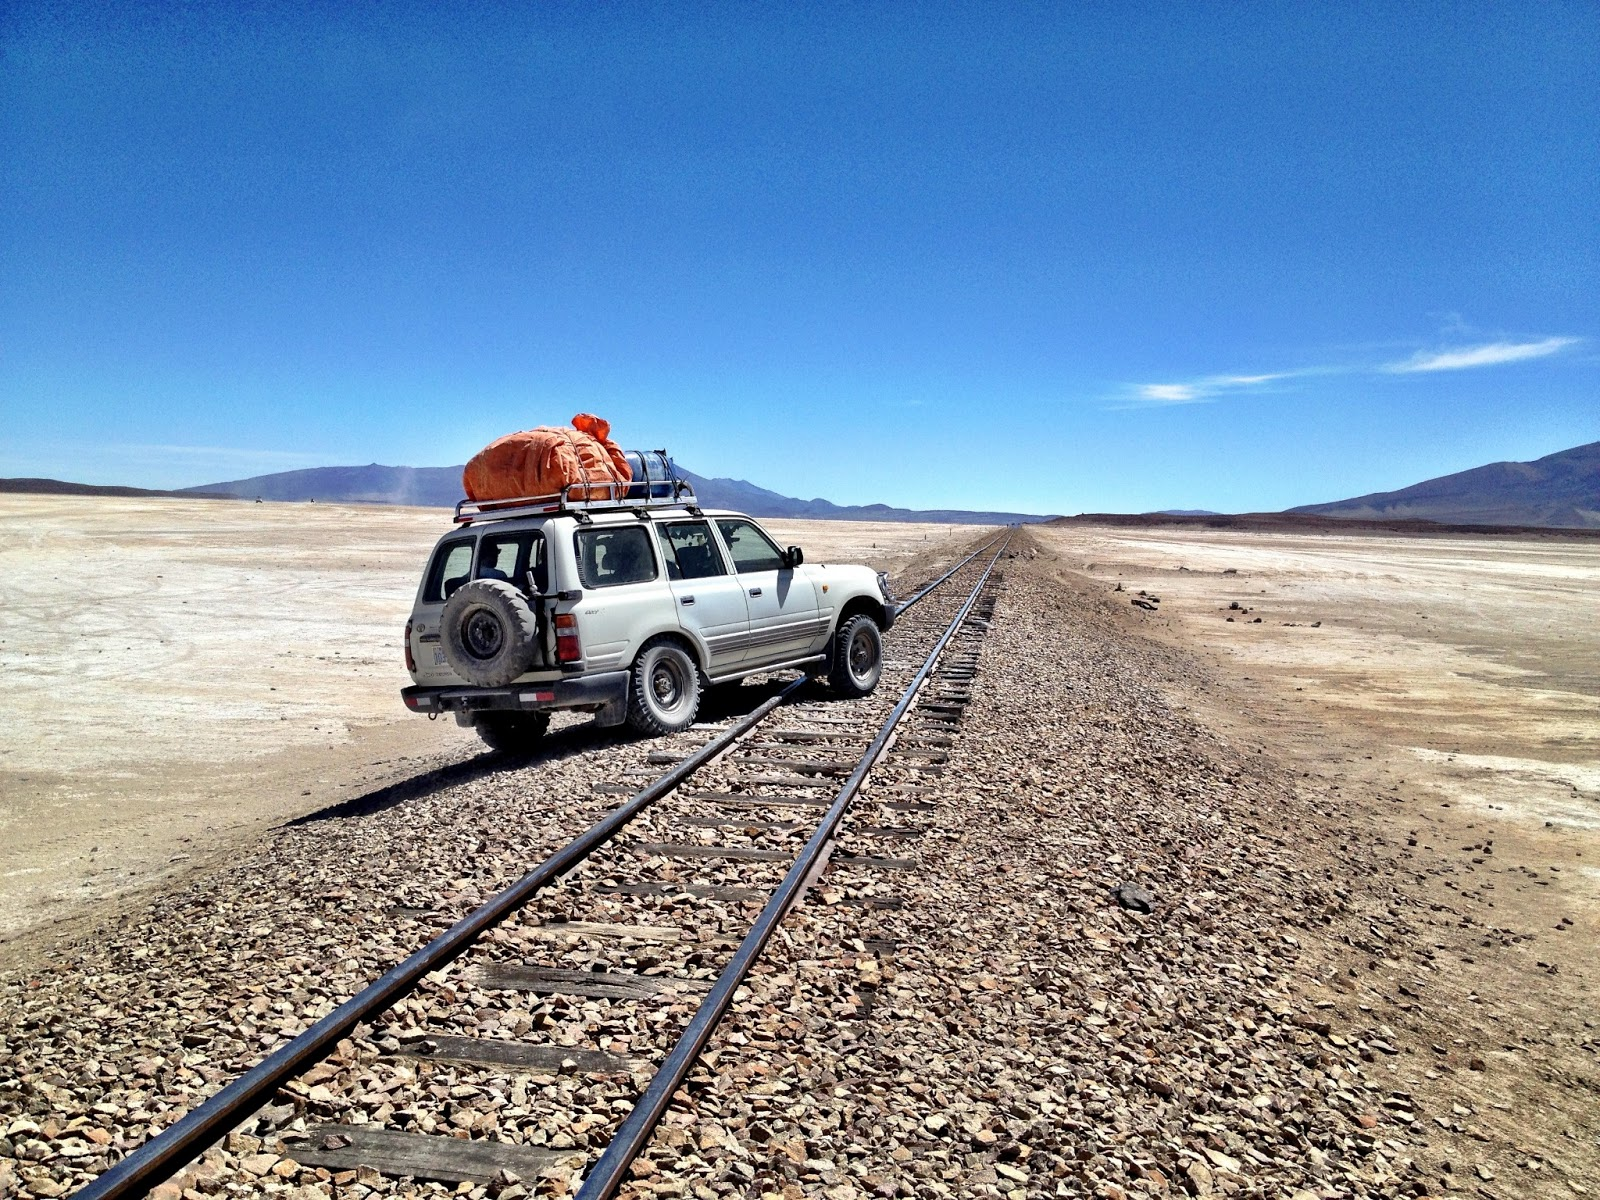 Crossing a train track - Salar de Uyuni, Bolivia